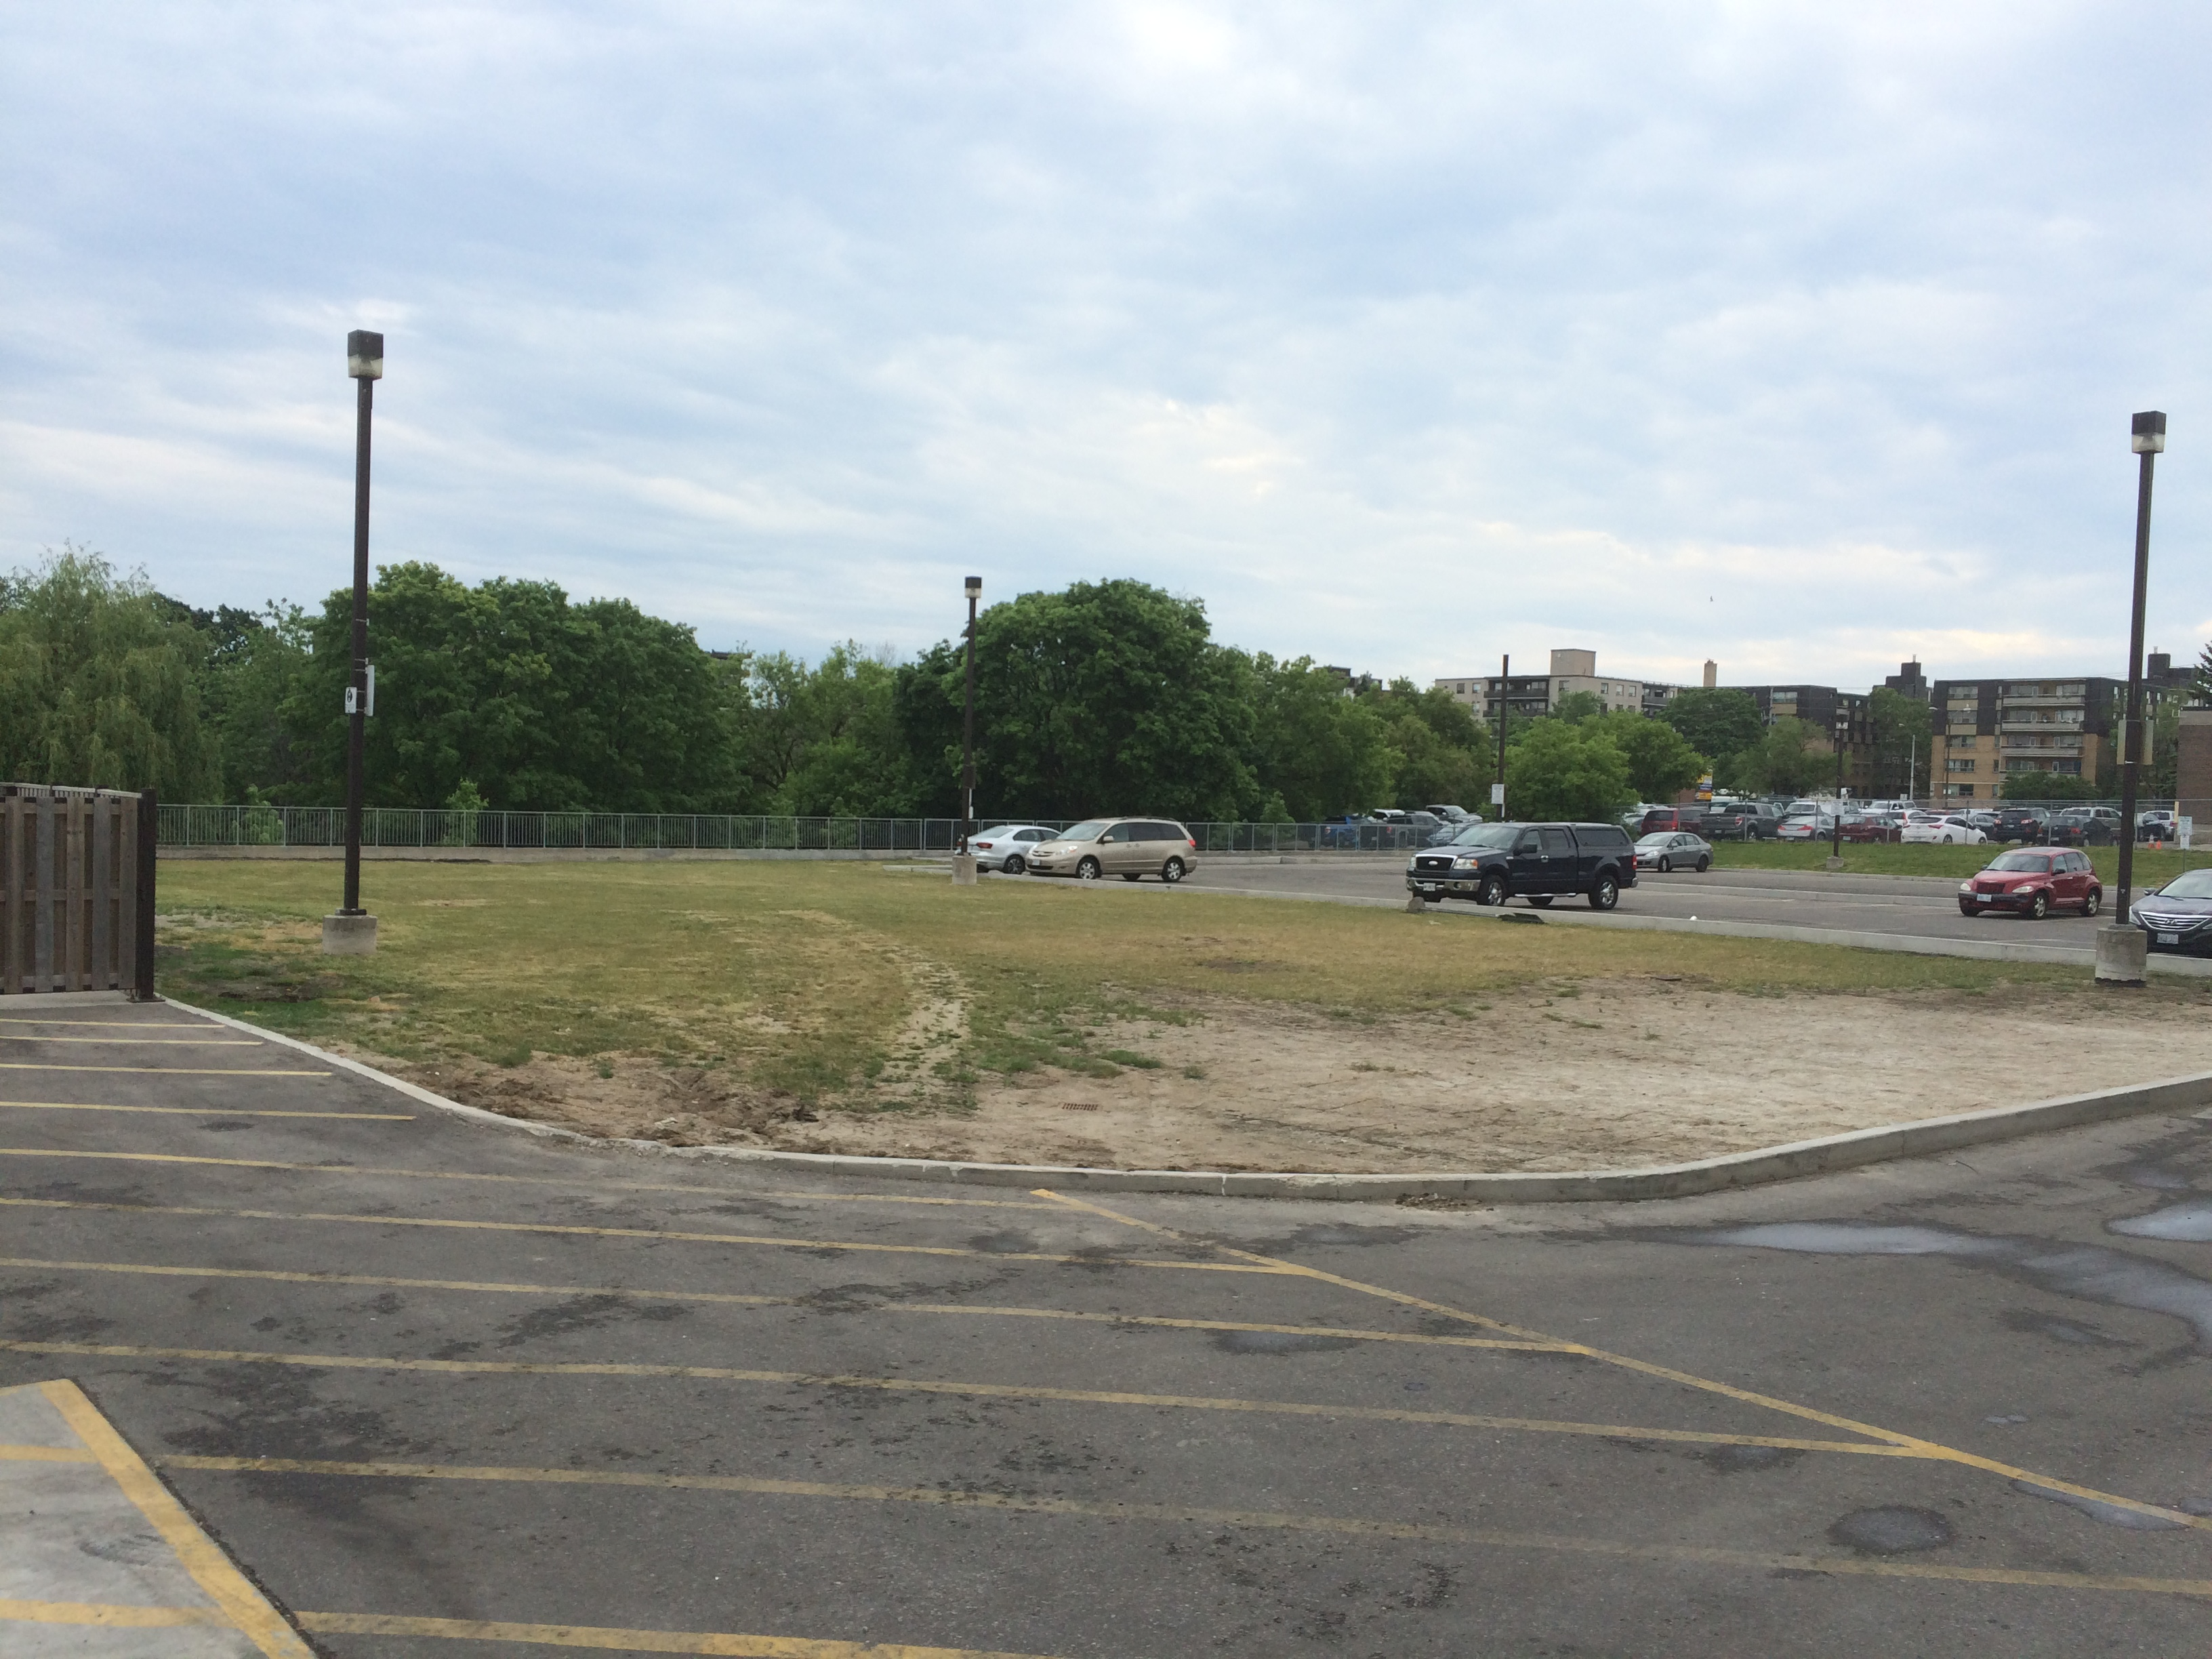 Area outside 1021 Birchmount Rd. to be redeveloped